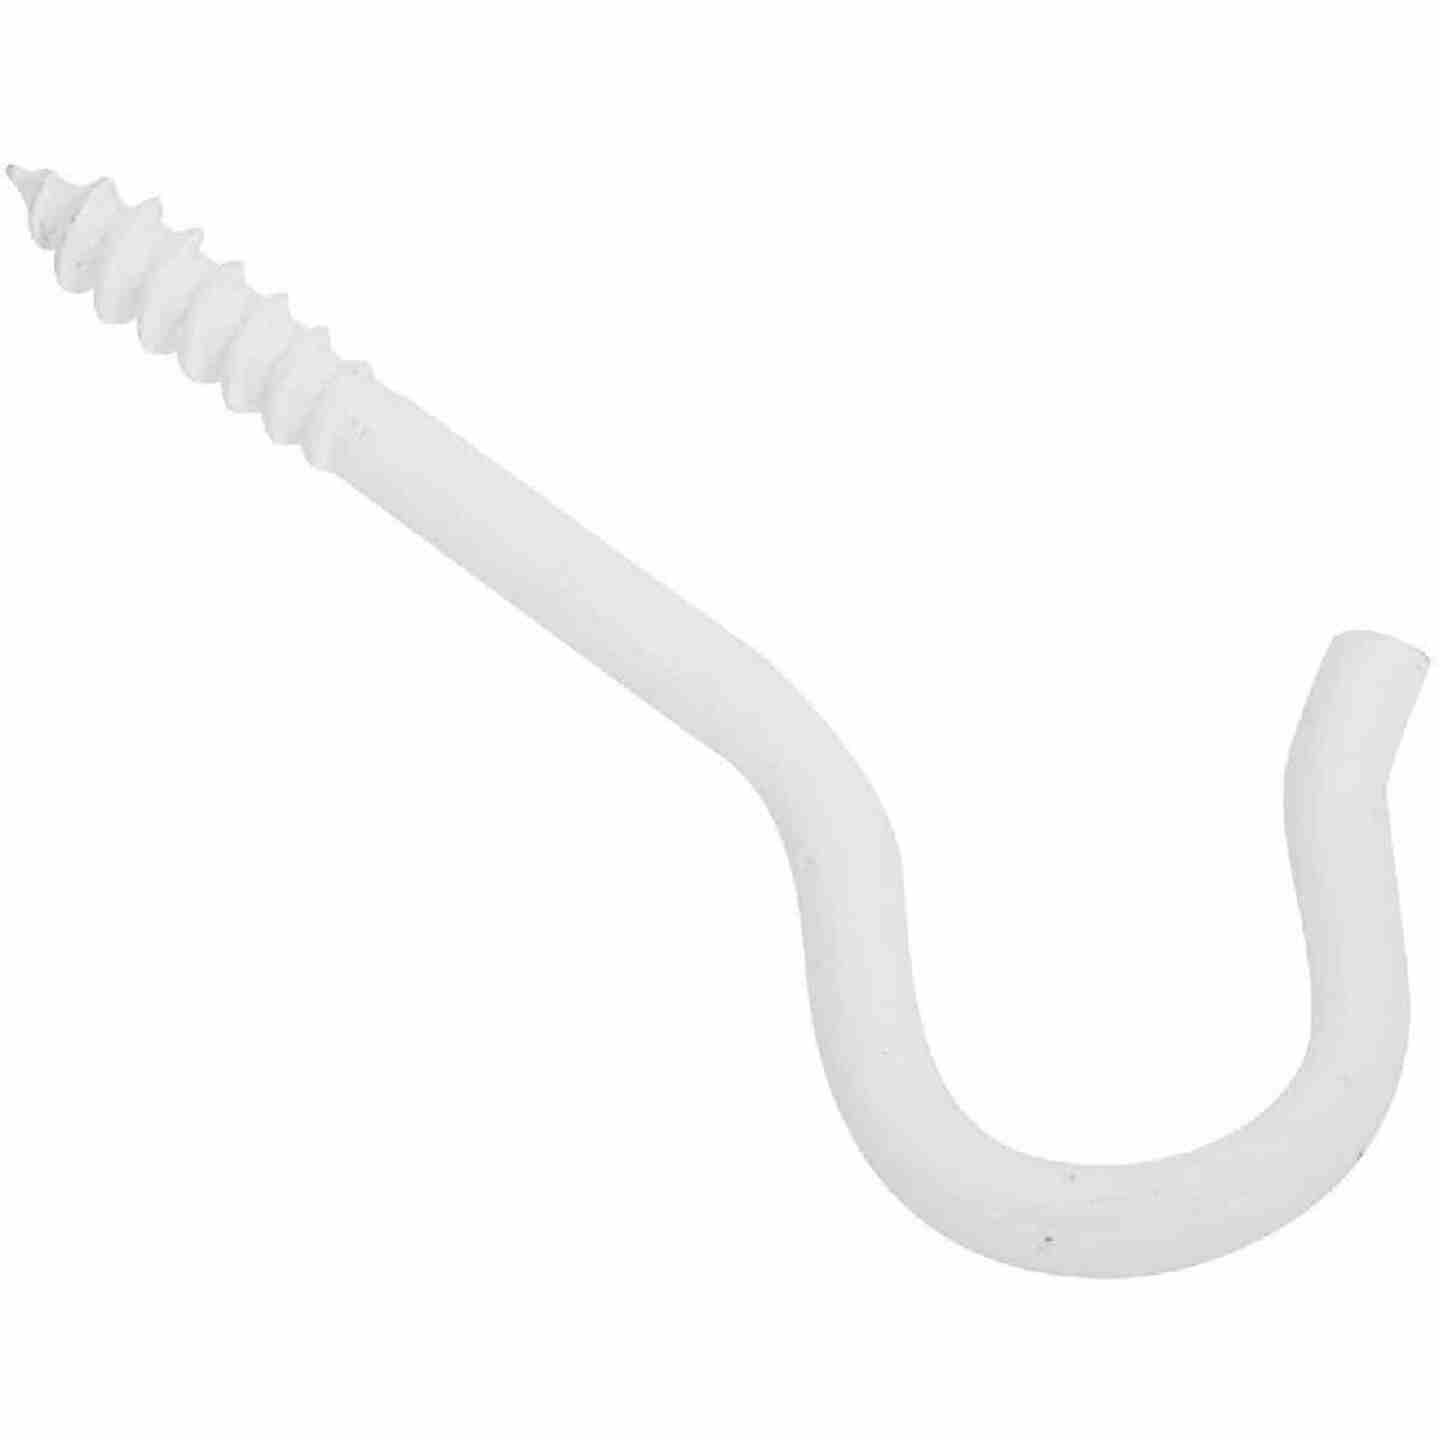 National 2-1/2 In. White Ceiling Hook (3 Pack) Image 3